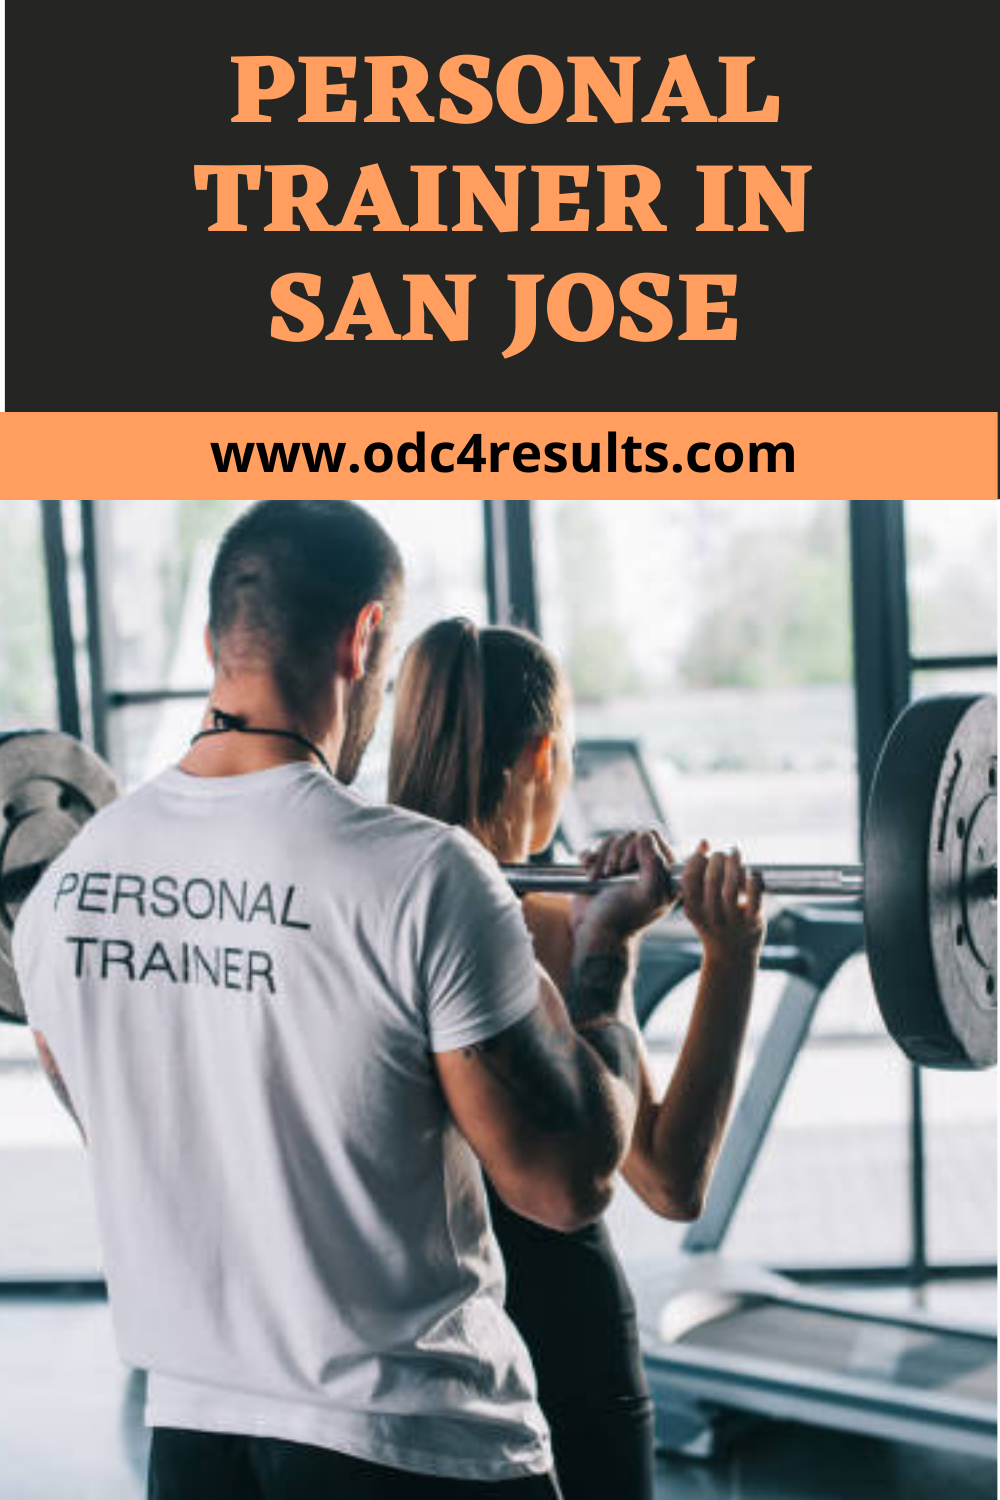 Personal Trainer In San Jose Personal Trainer Personal Trainer Logo Person